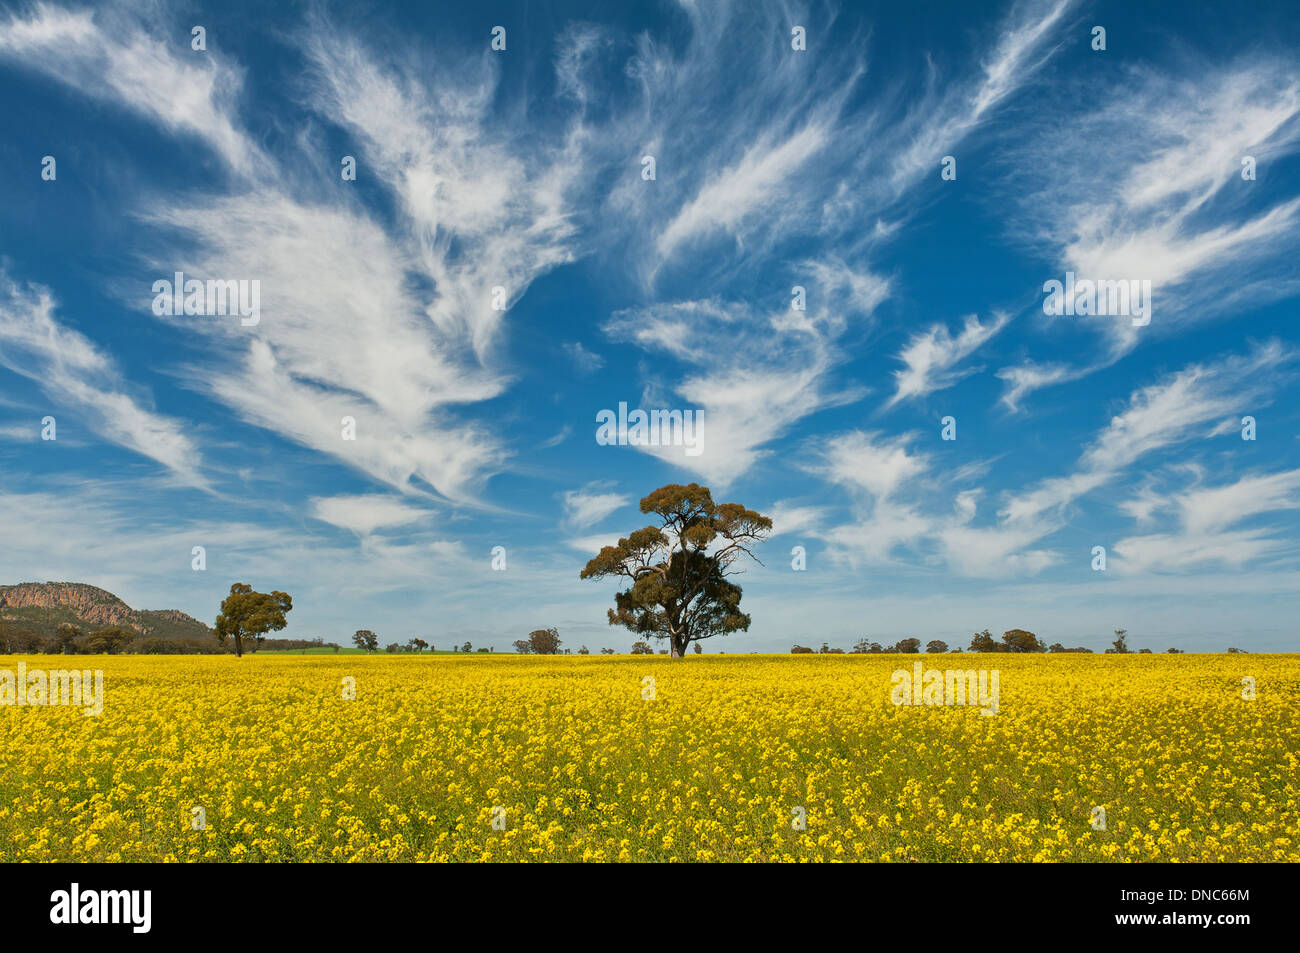 Canola field in the Wimmera. - Stock Image